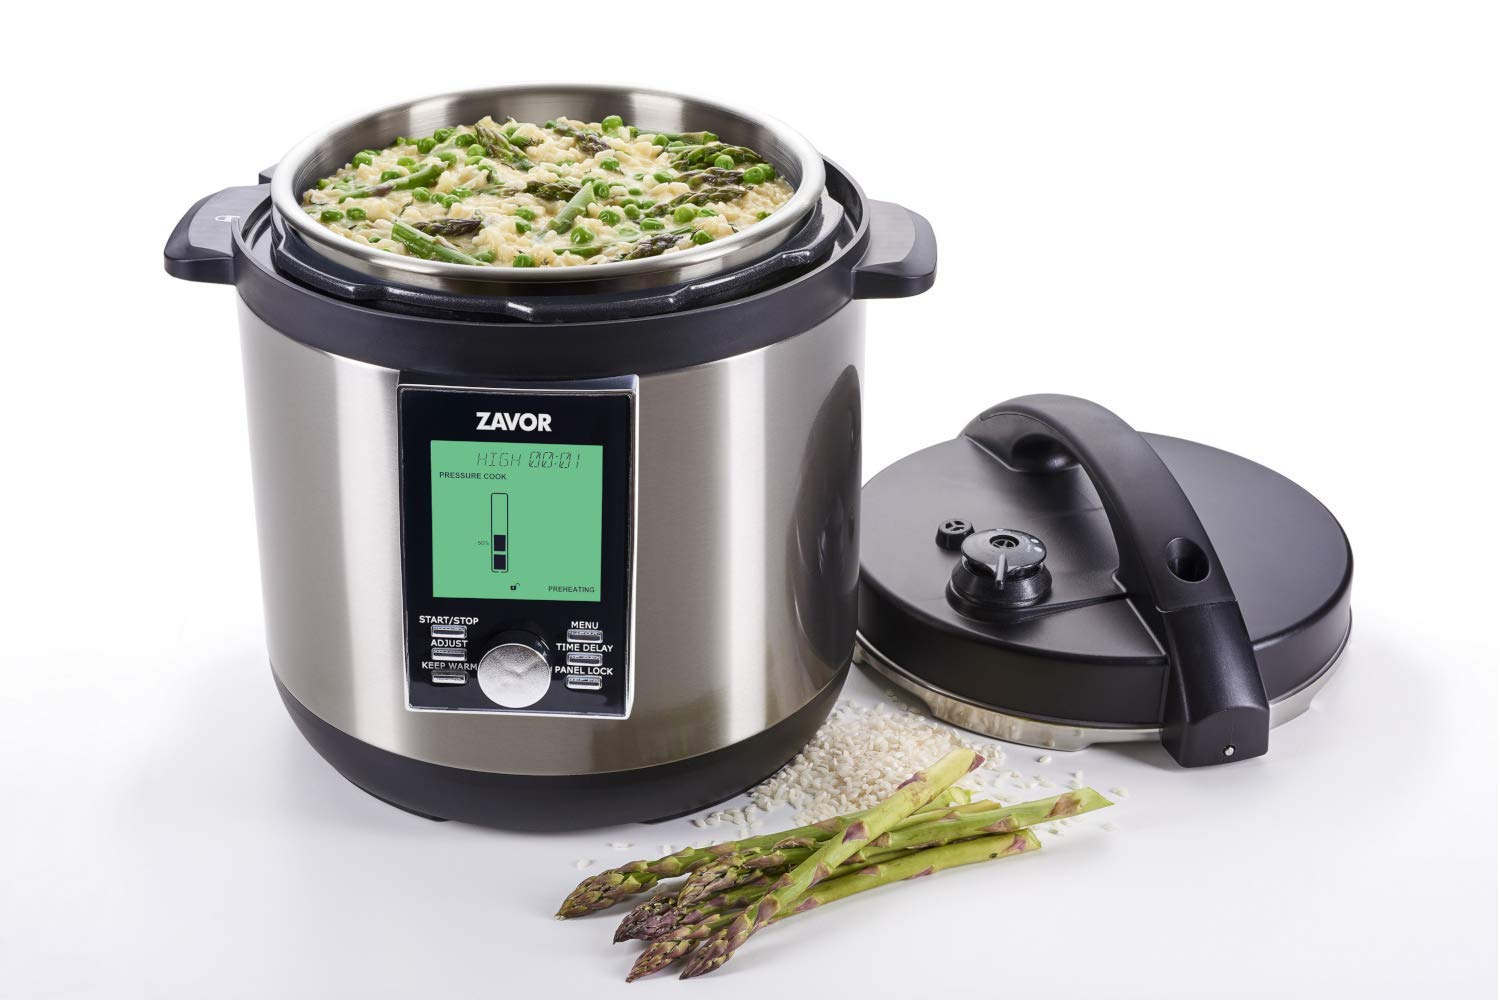 Zavor LUX LCD 6-Quart Programmable Electric Multi-Cooker with Multi-Cooker Perfection Cookbook by Zavor (Image #3)